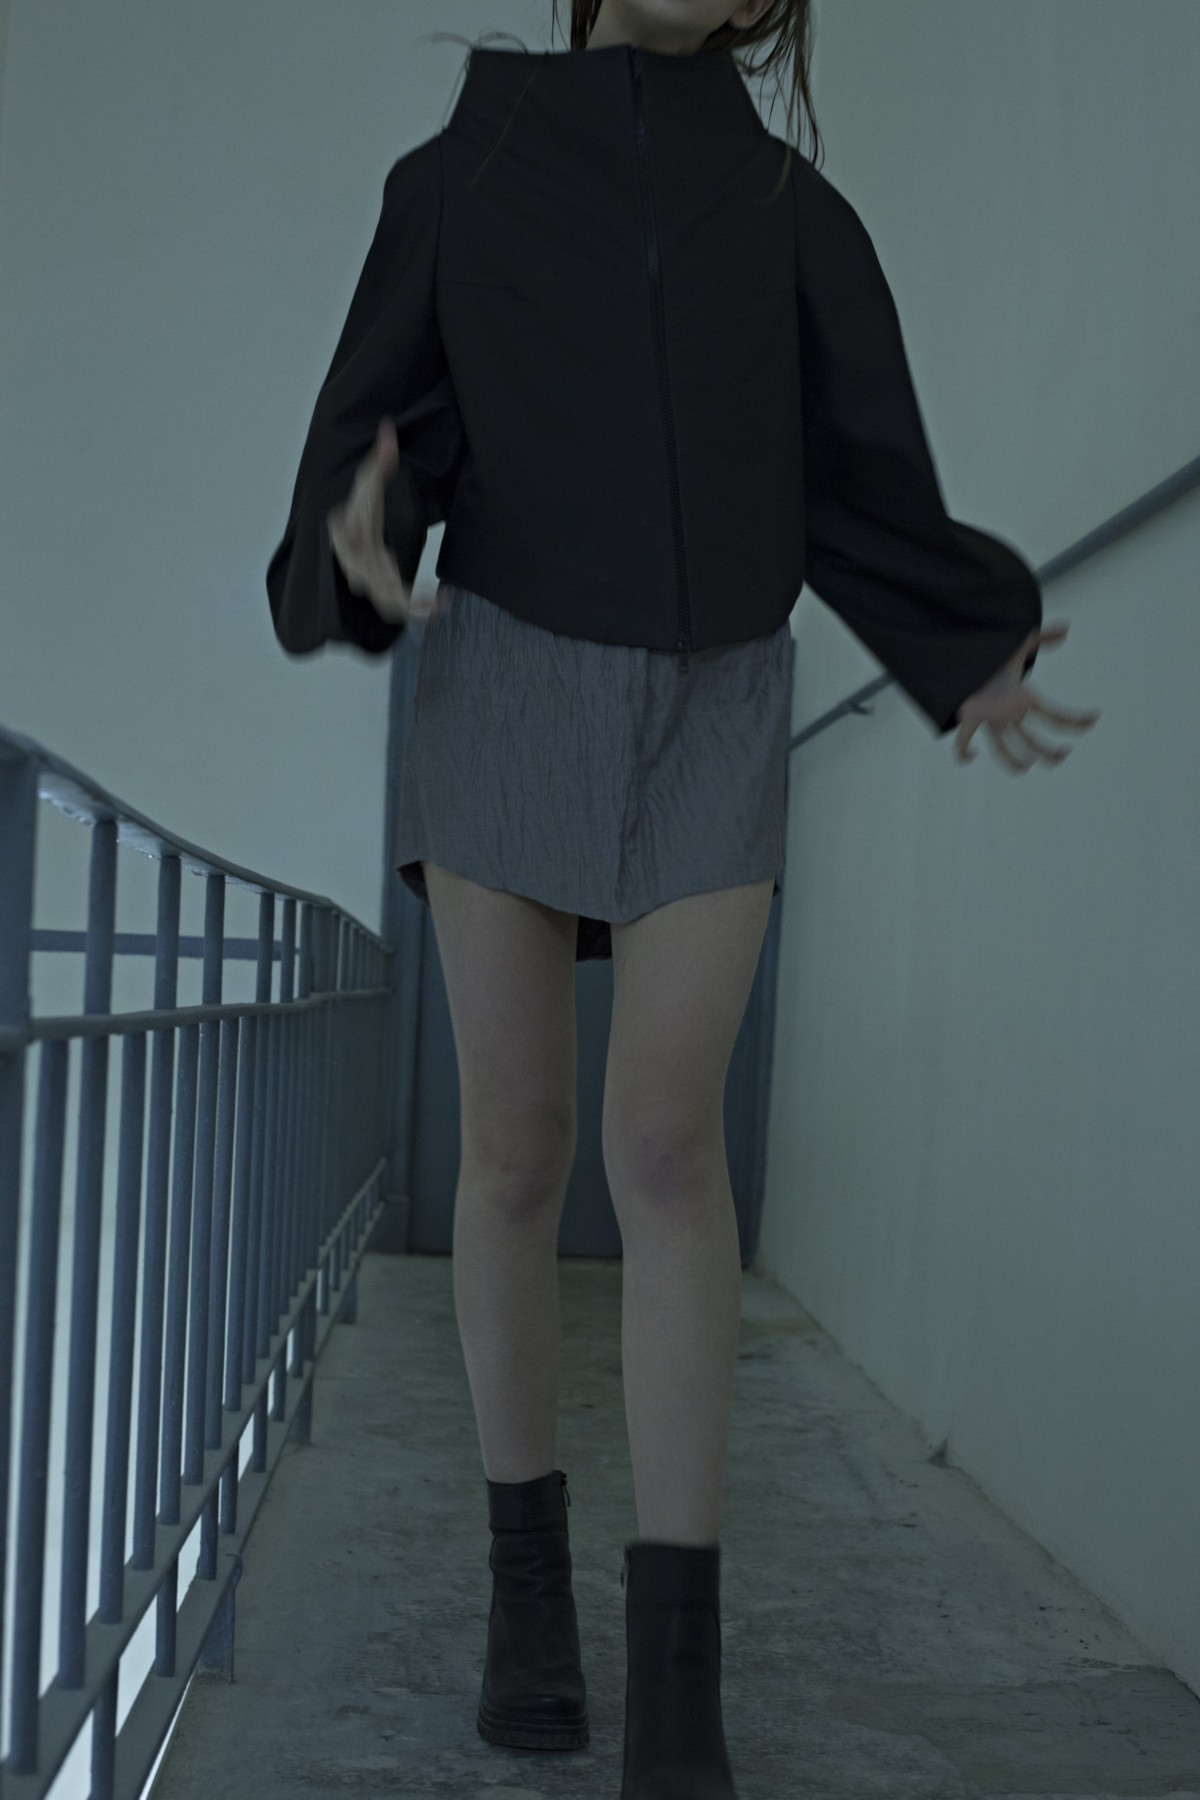 FASHION-THE LOST CHILD - ALYONA KOROLYOVA (10)